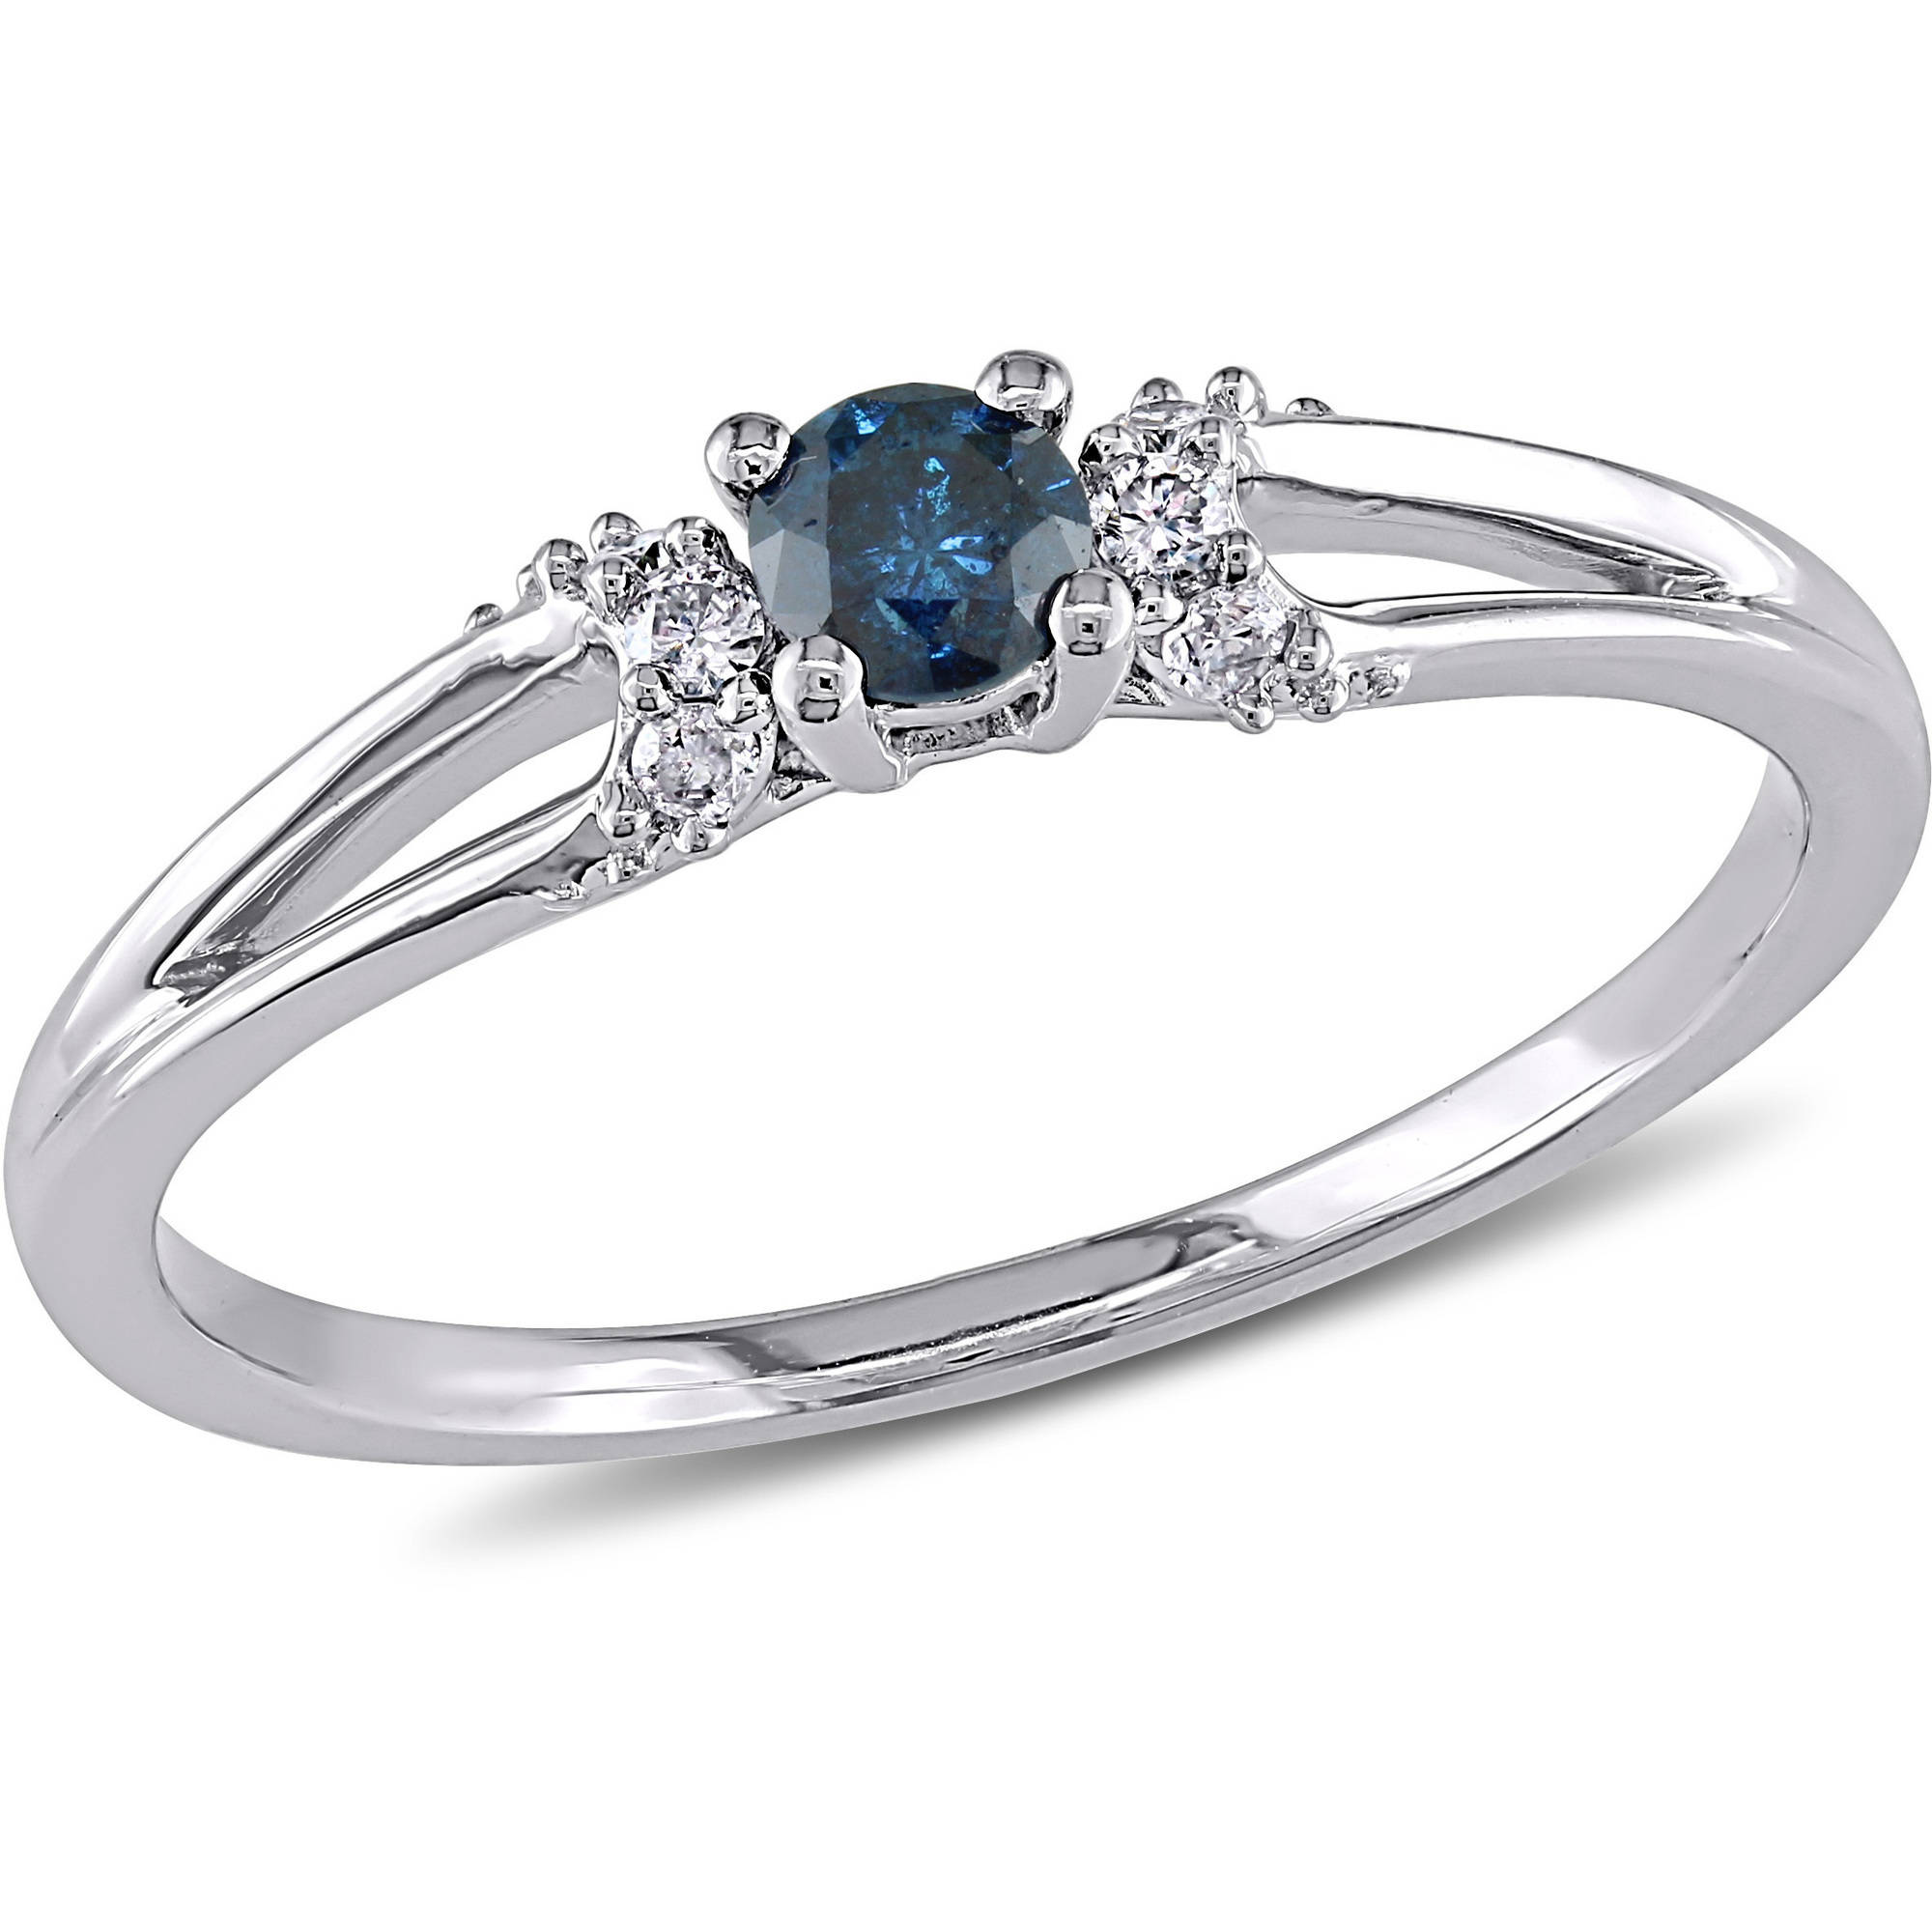 1 5 Carat T.W. Blue and White Diamond 10kt White Gold Engagement Ring by Delmar Manufacturing LLC